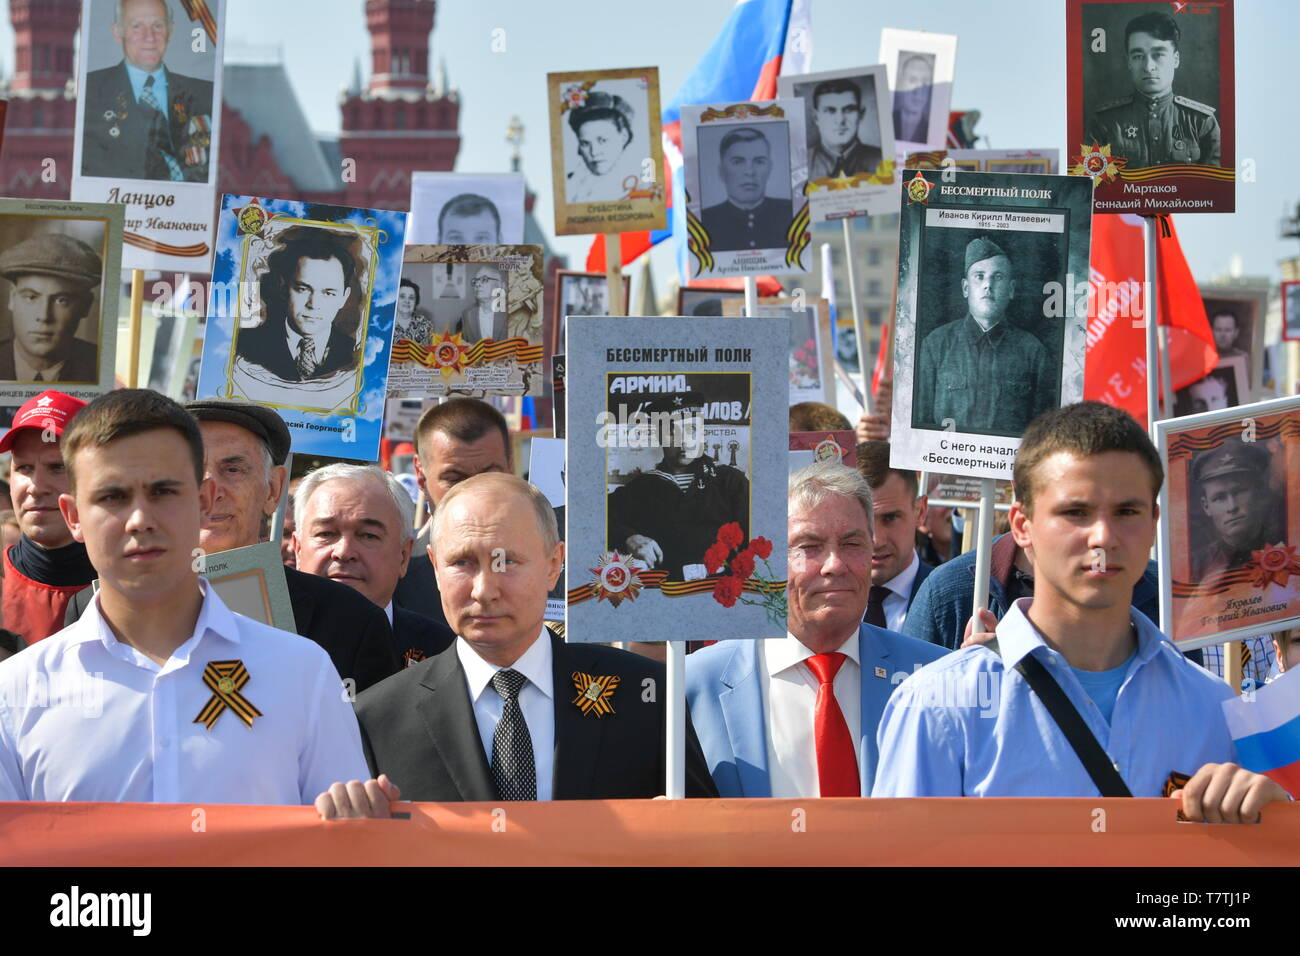 Moscow, Russia. 09th May, 2019. MOSCOW, RUSSIA - MAY 9, 2019: Russia's President Vladimir Putin (2nd L front) carries a portrait of his father Vladimir Spiridonovich Putin (1911-1998), who fought in World War II, as he takes part in the Immortal Regiment march in Red Square to mark the 74th anniversary of the Victory over Nazi Germany in the Great Patriotic War, the Eastern Front of World War II. Alexei Druzhinin/Russian Presidential Press and Informationa Office/TASS Credit: ITAR-TASS News Agency/Alamy Live News - Stock Image